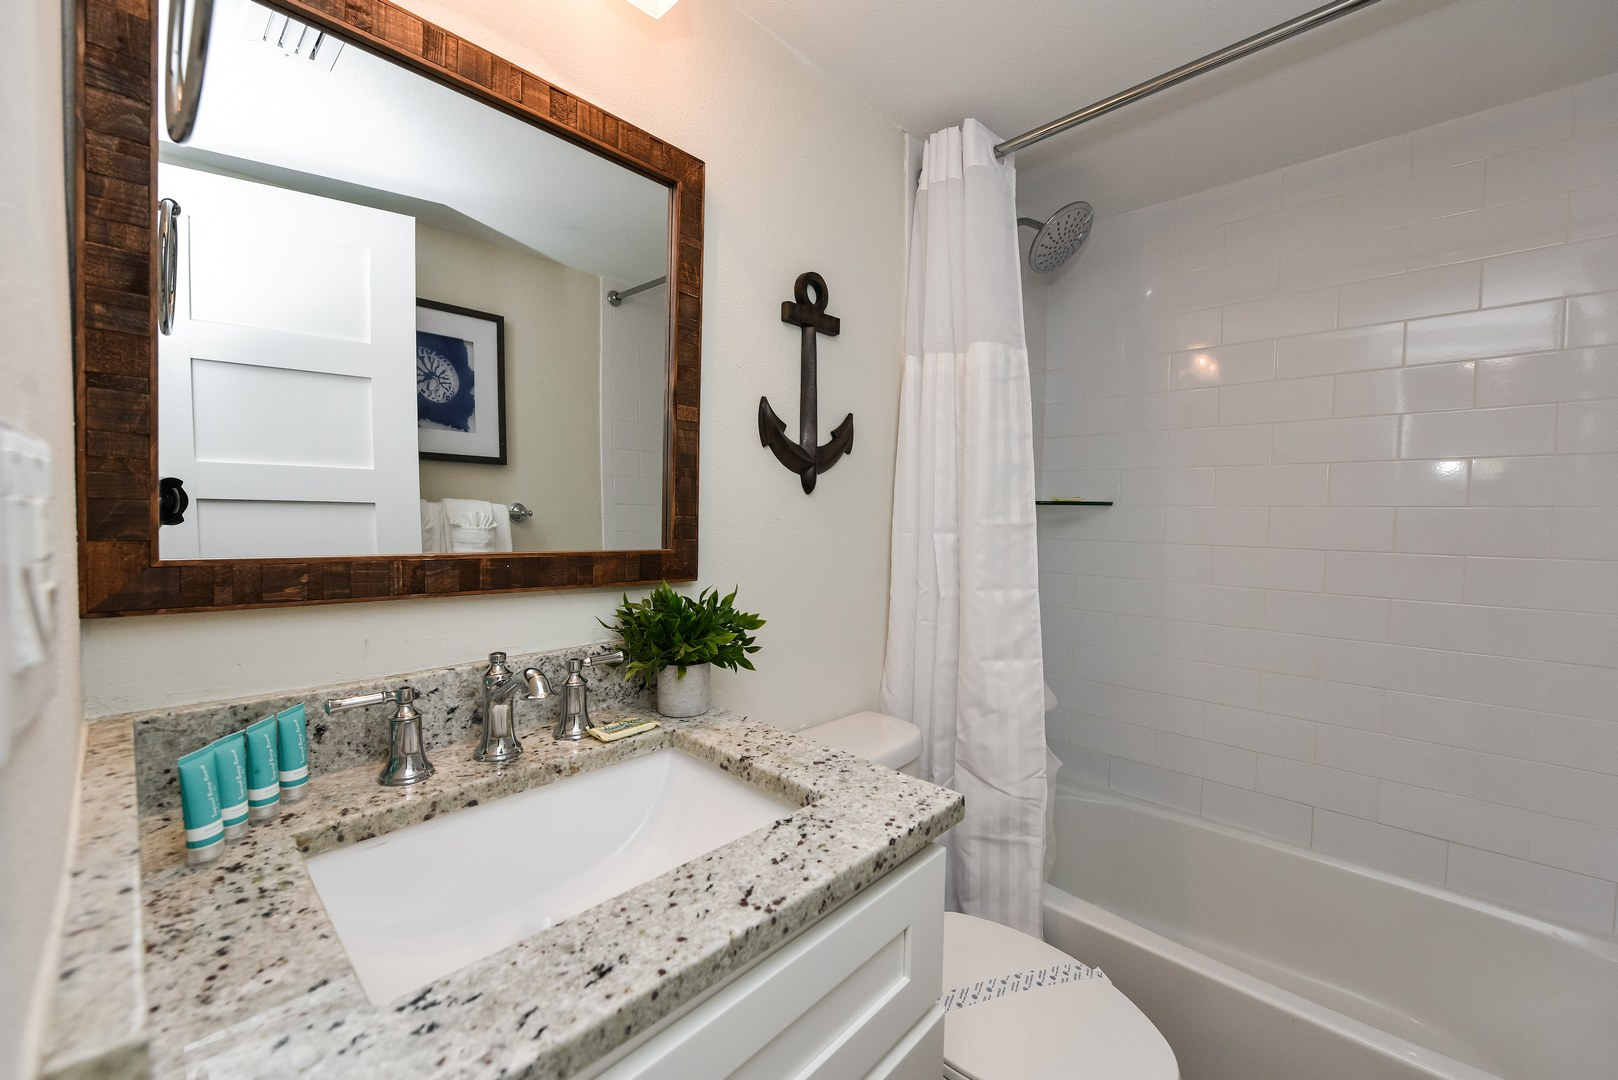 Shower and Tub combo with Beautiful Vanity and Décor